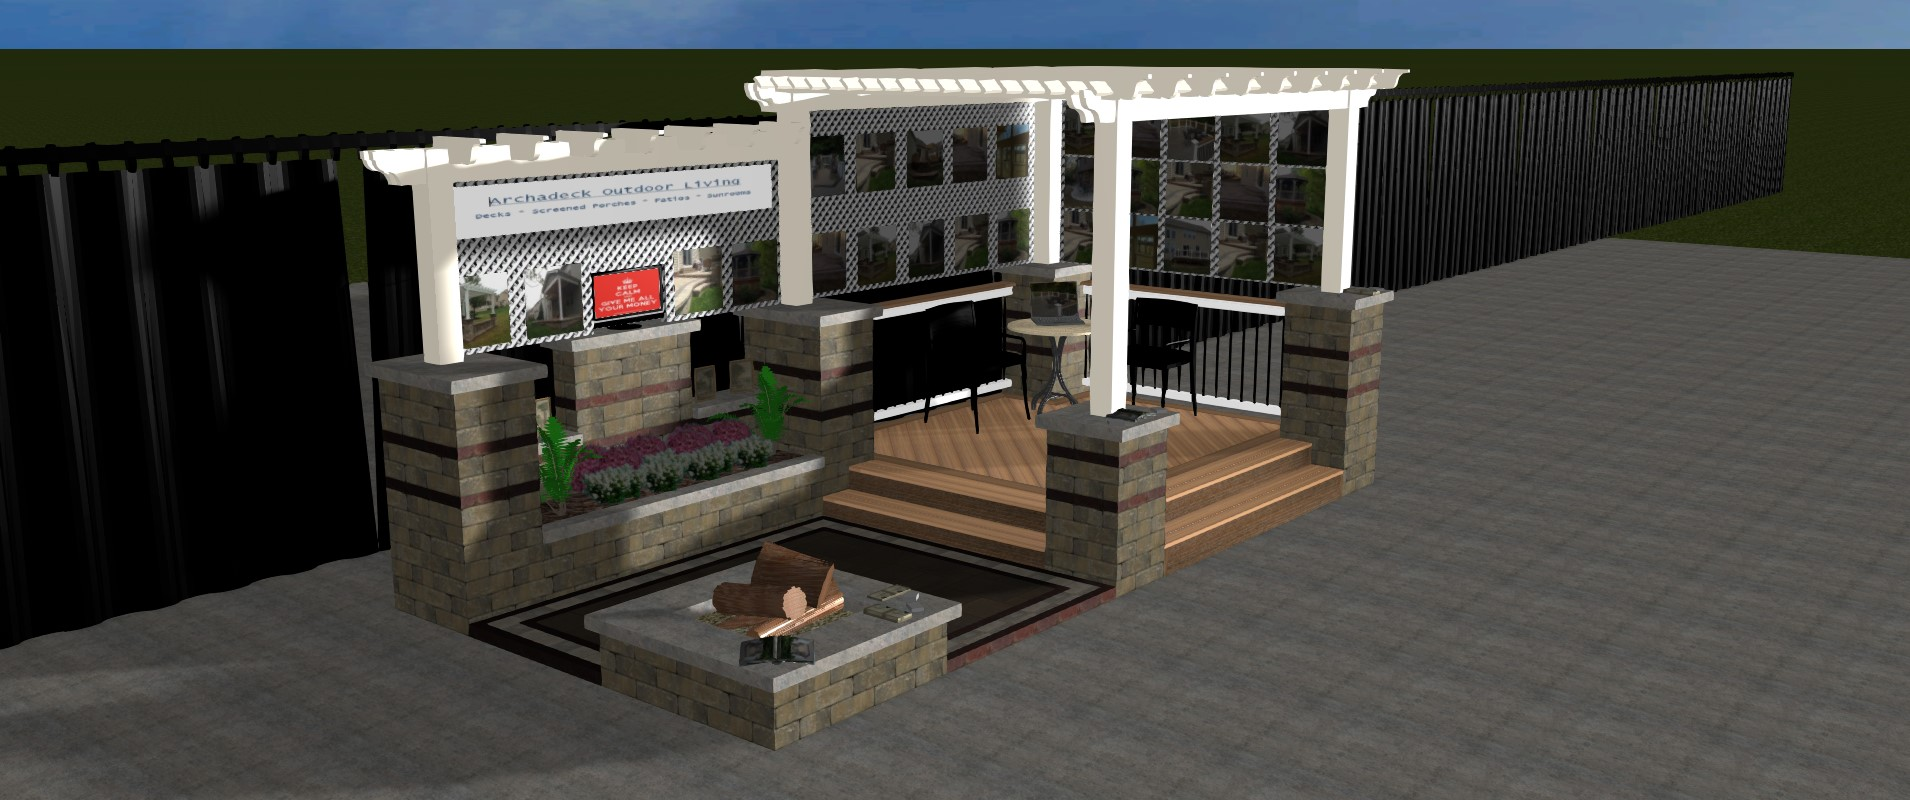 Elegant A Look At Our New Booth For The Columbus Dispatch Home And Garden Show